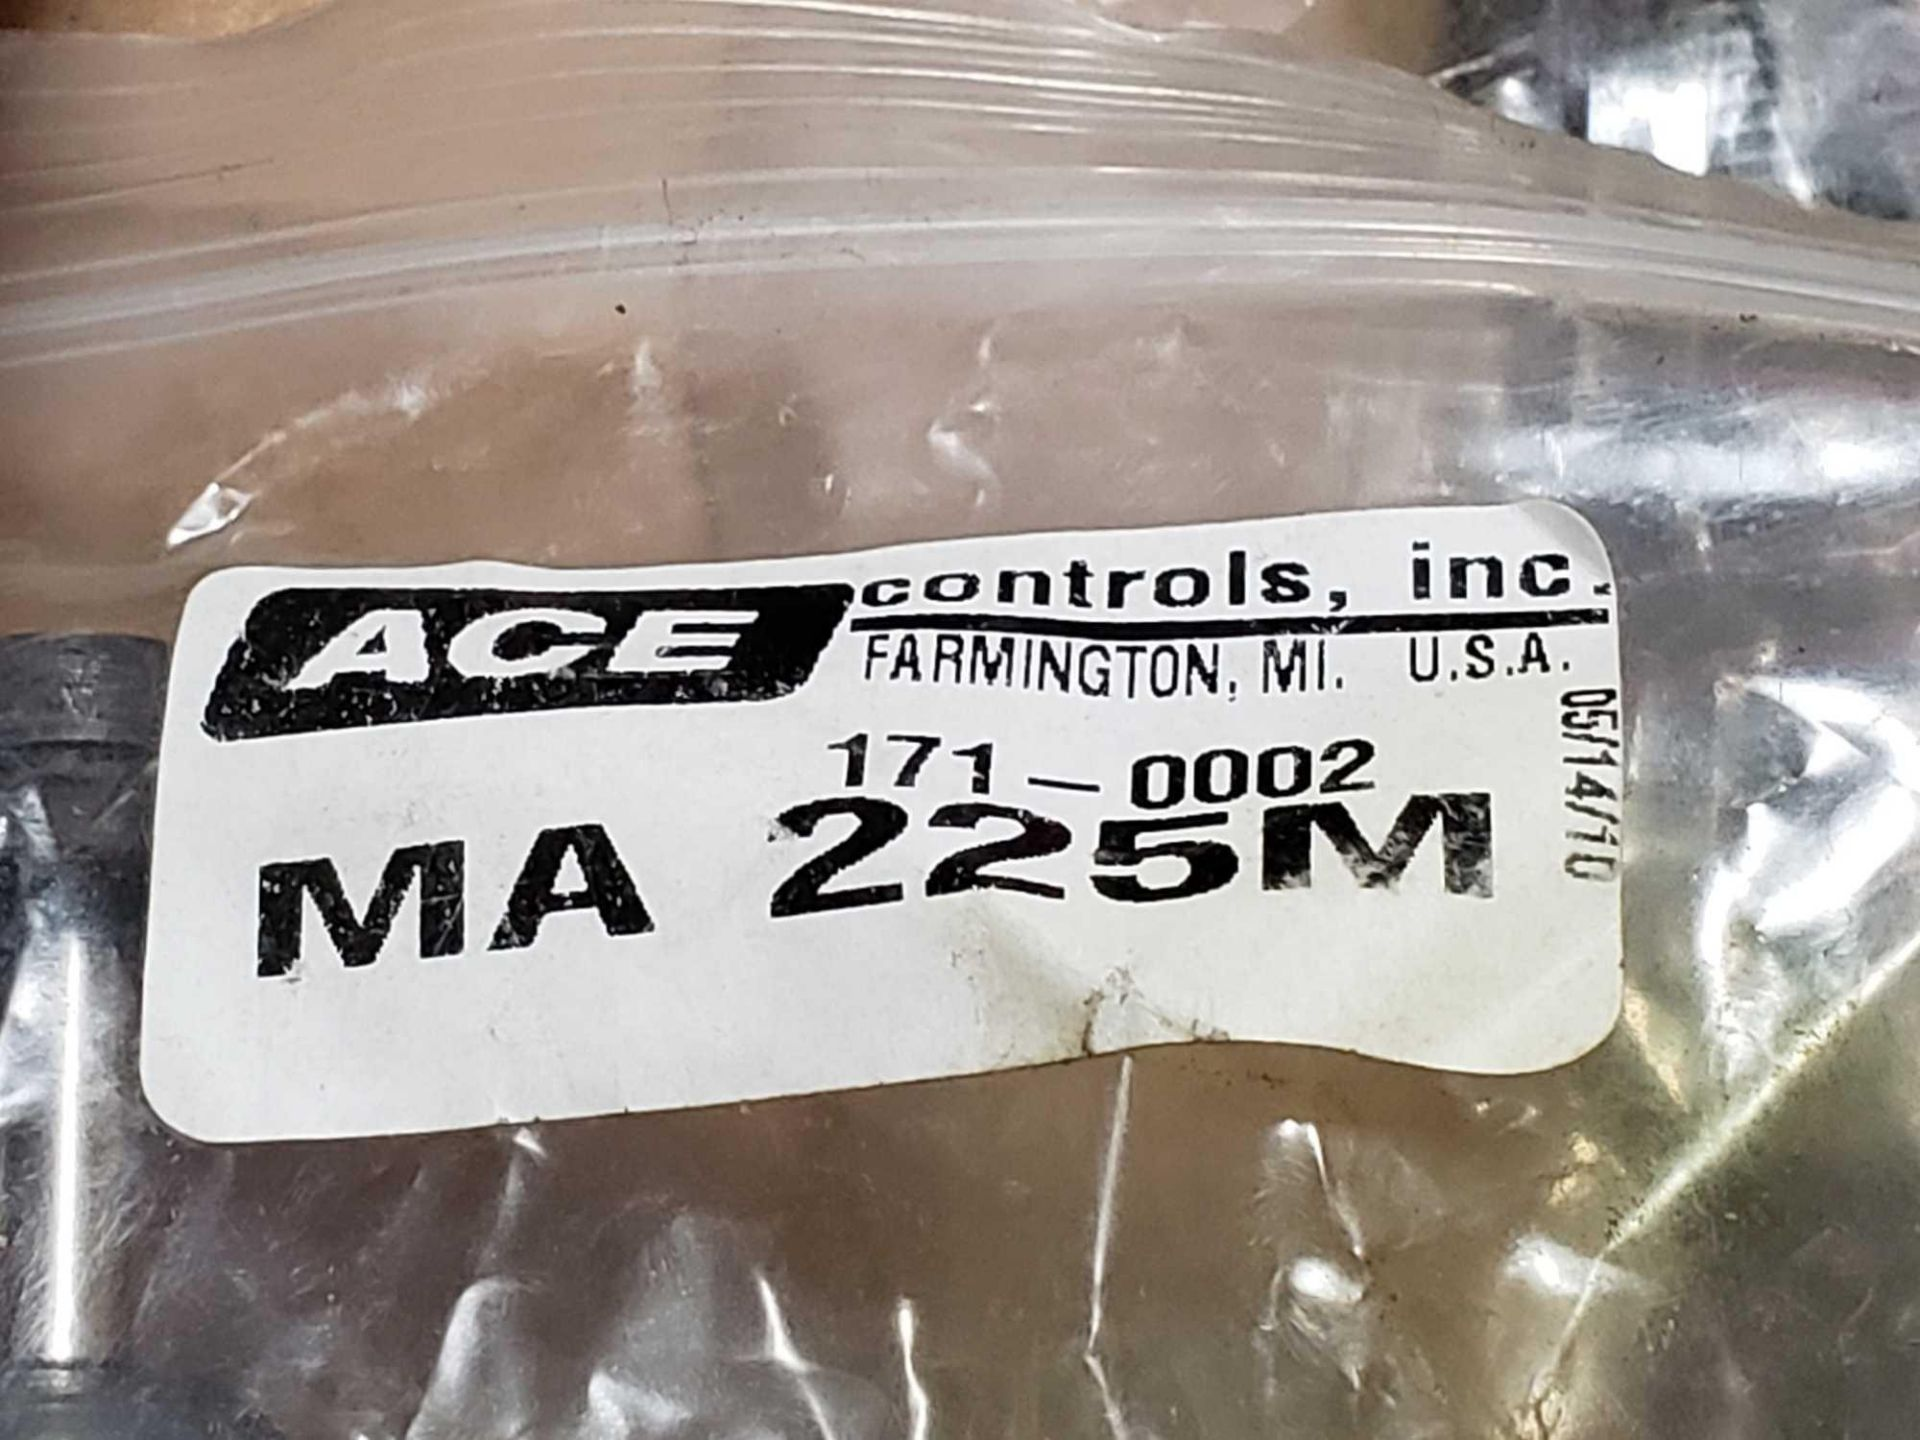 Lot 49 - Qty 2 - Ace controls model MA-225M. New in package.